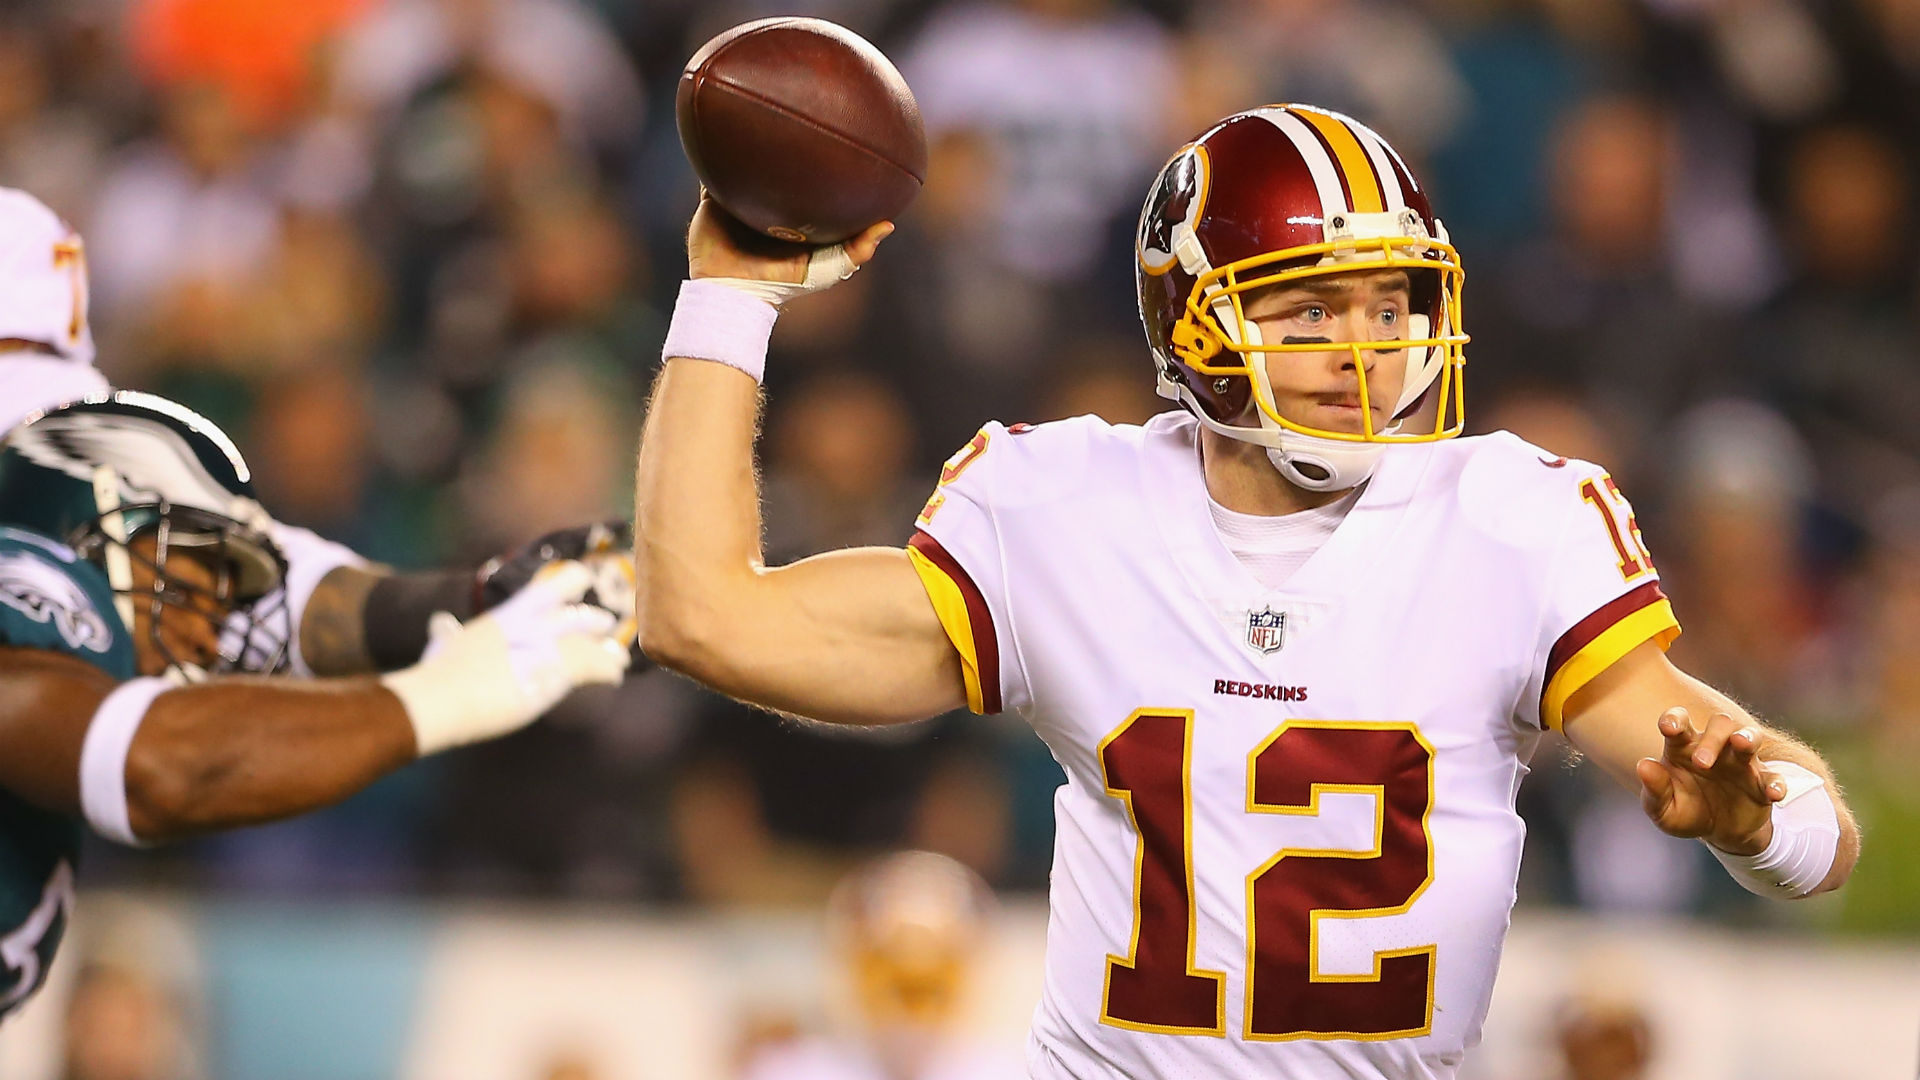 Another injured Redskins QB: Colt McCoy hurts leg, Mark Sanchez goes in